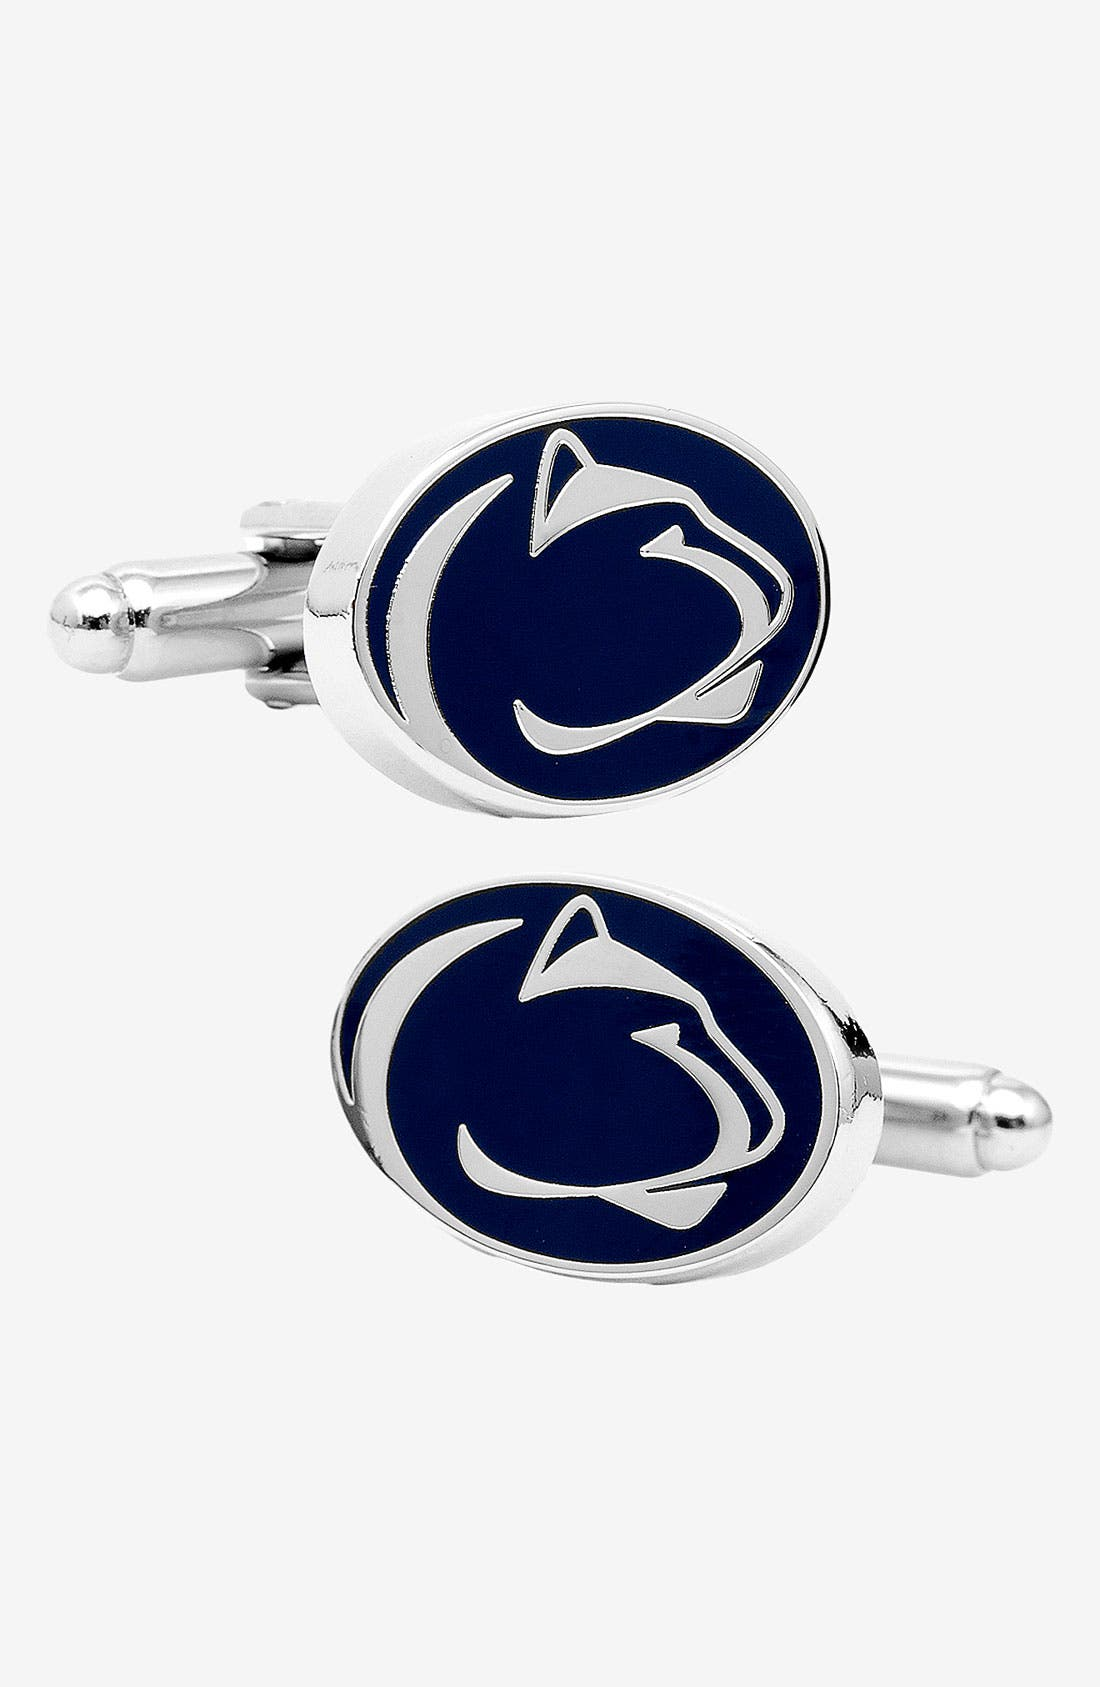 'Penn State University Nittany Lions' Cuff Links,                         Main,                         color, Navy/ White